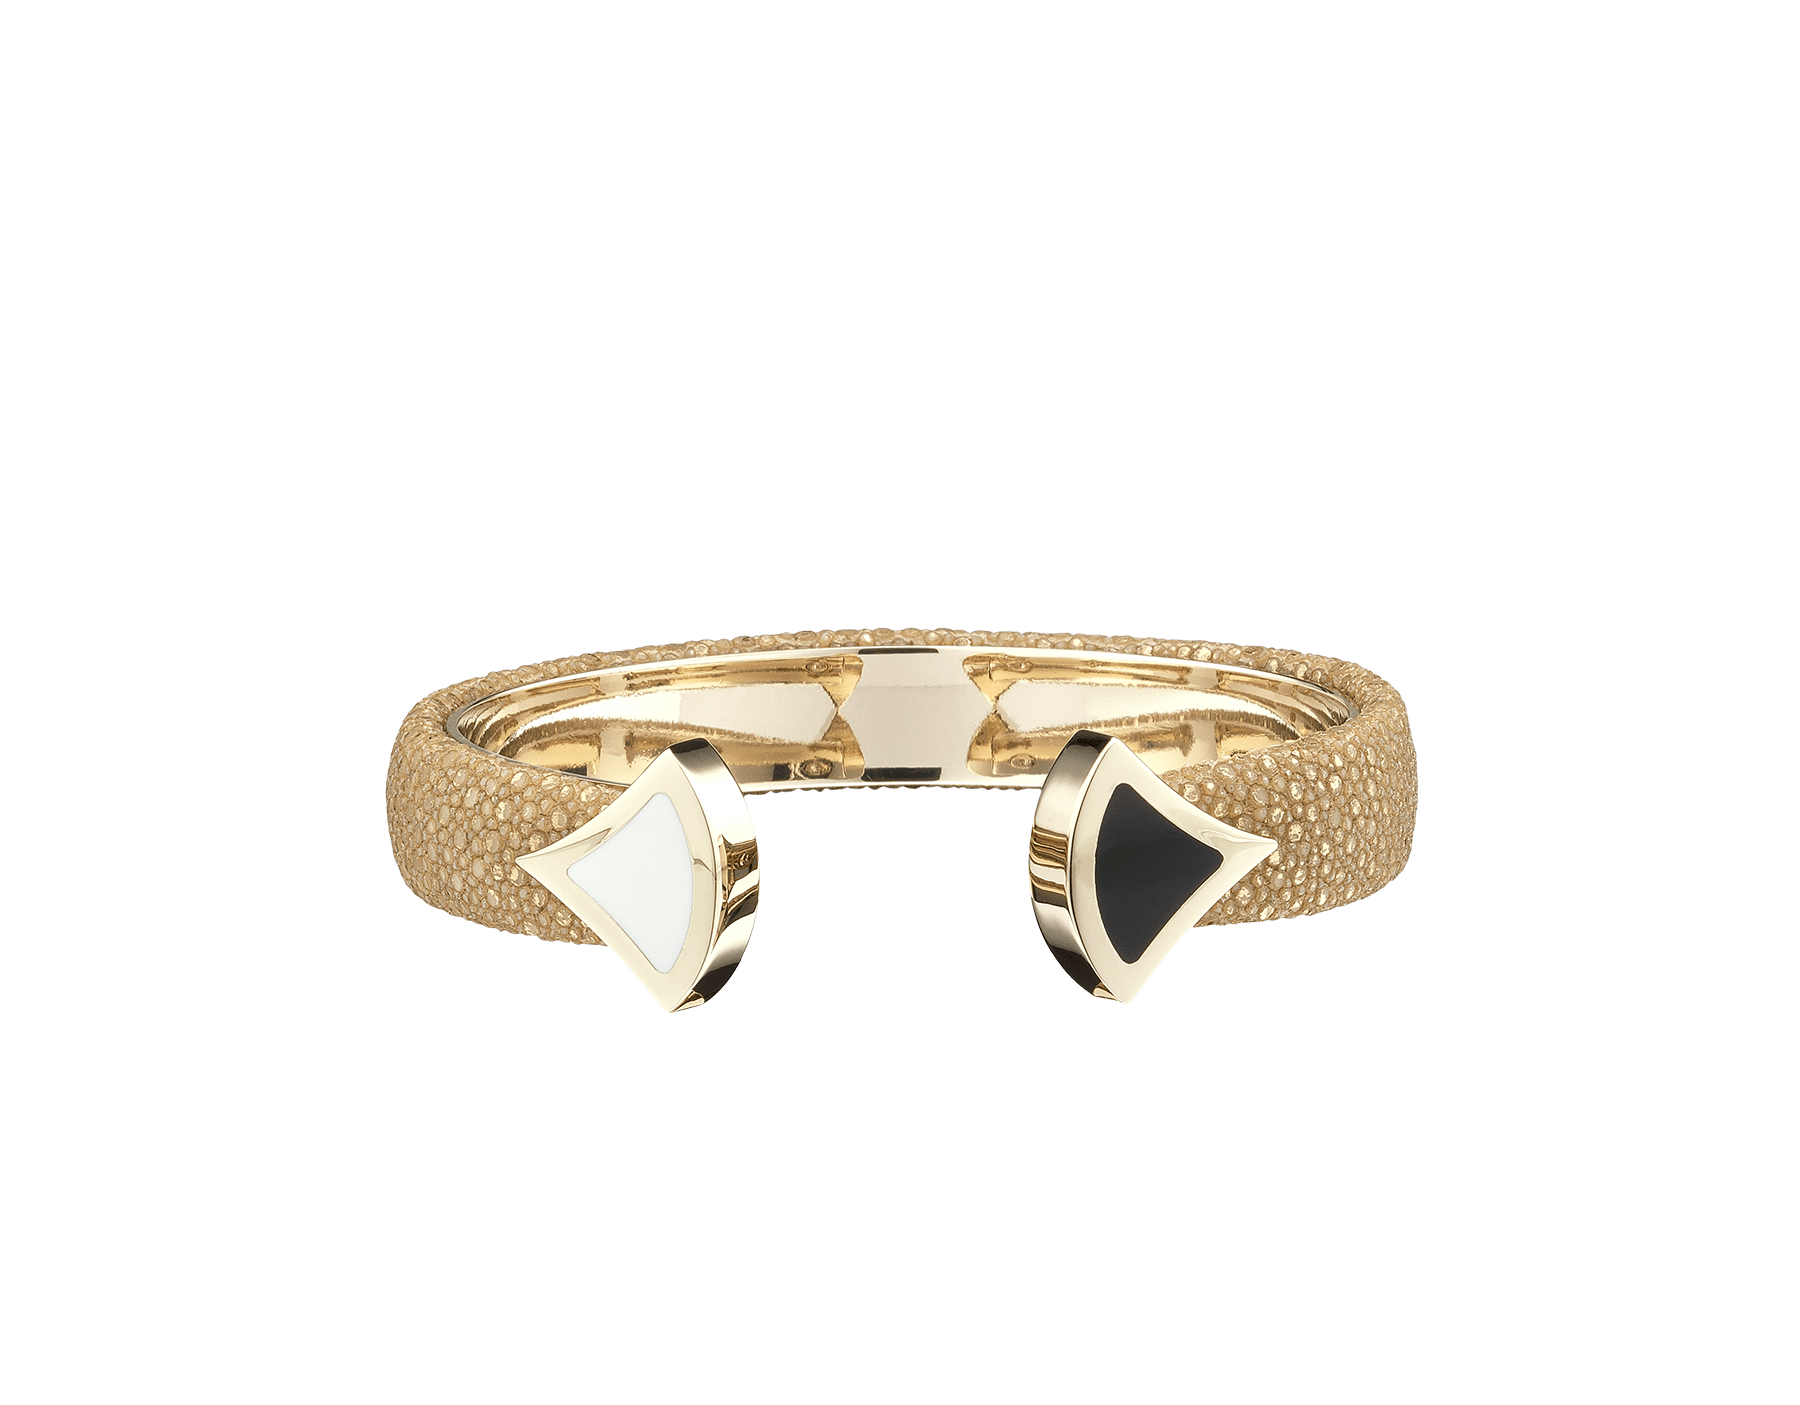 Bracelet in royal sapphire galuchat skin, with iconic contraire brass light gold plated DIVAS' DREAM motif in black and white enamel. DIVA-CONTRAIR-M image 2